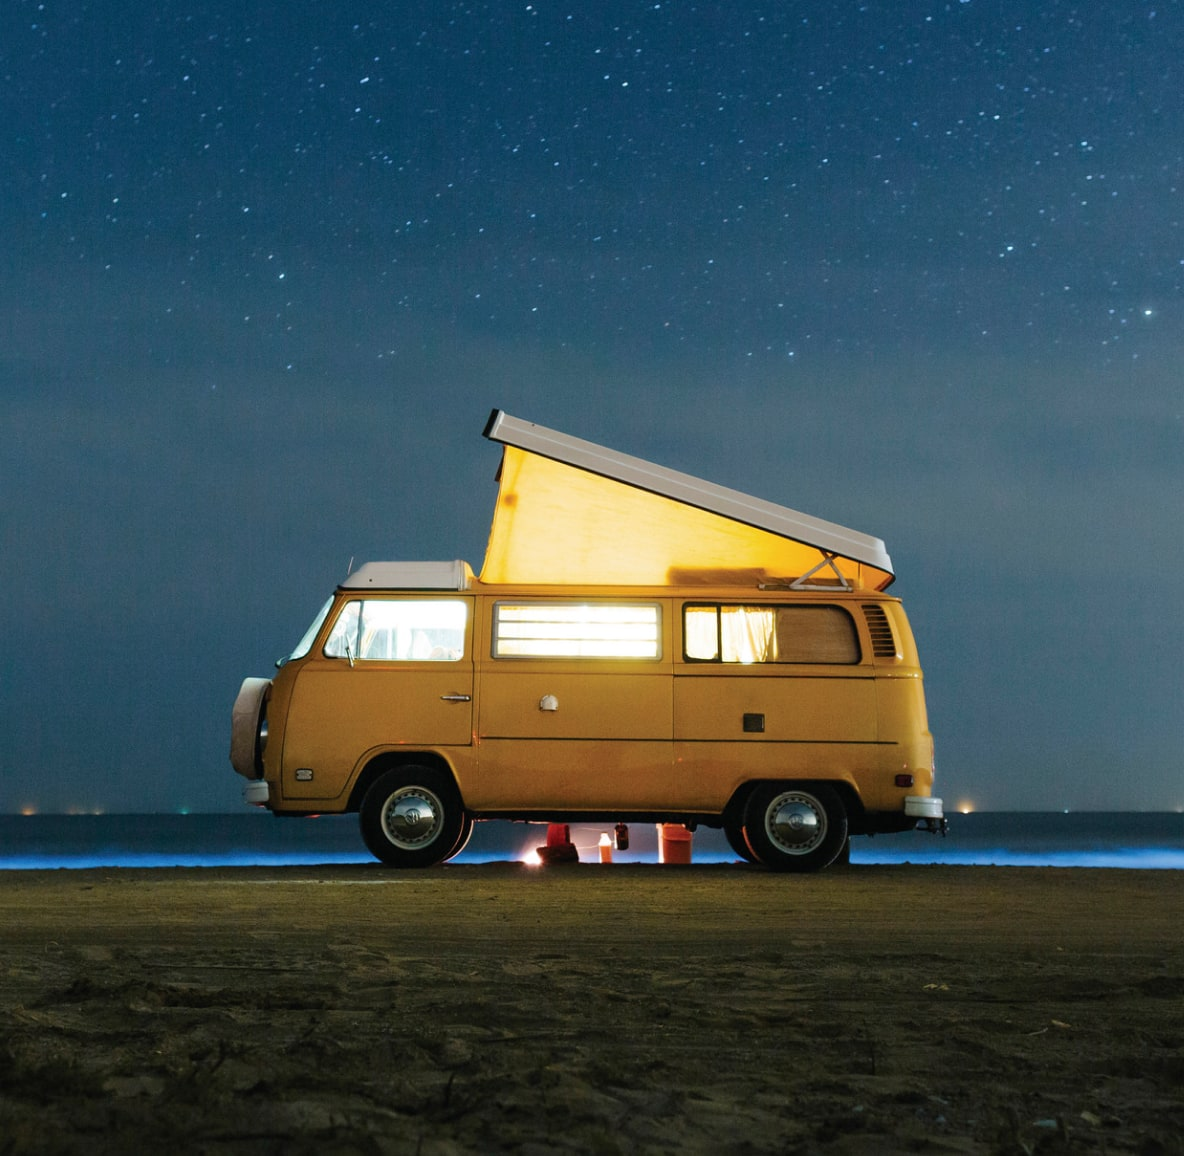 A yellow camper van parked beneath a sky full of stars